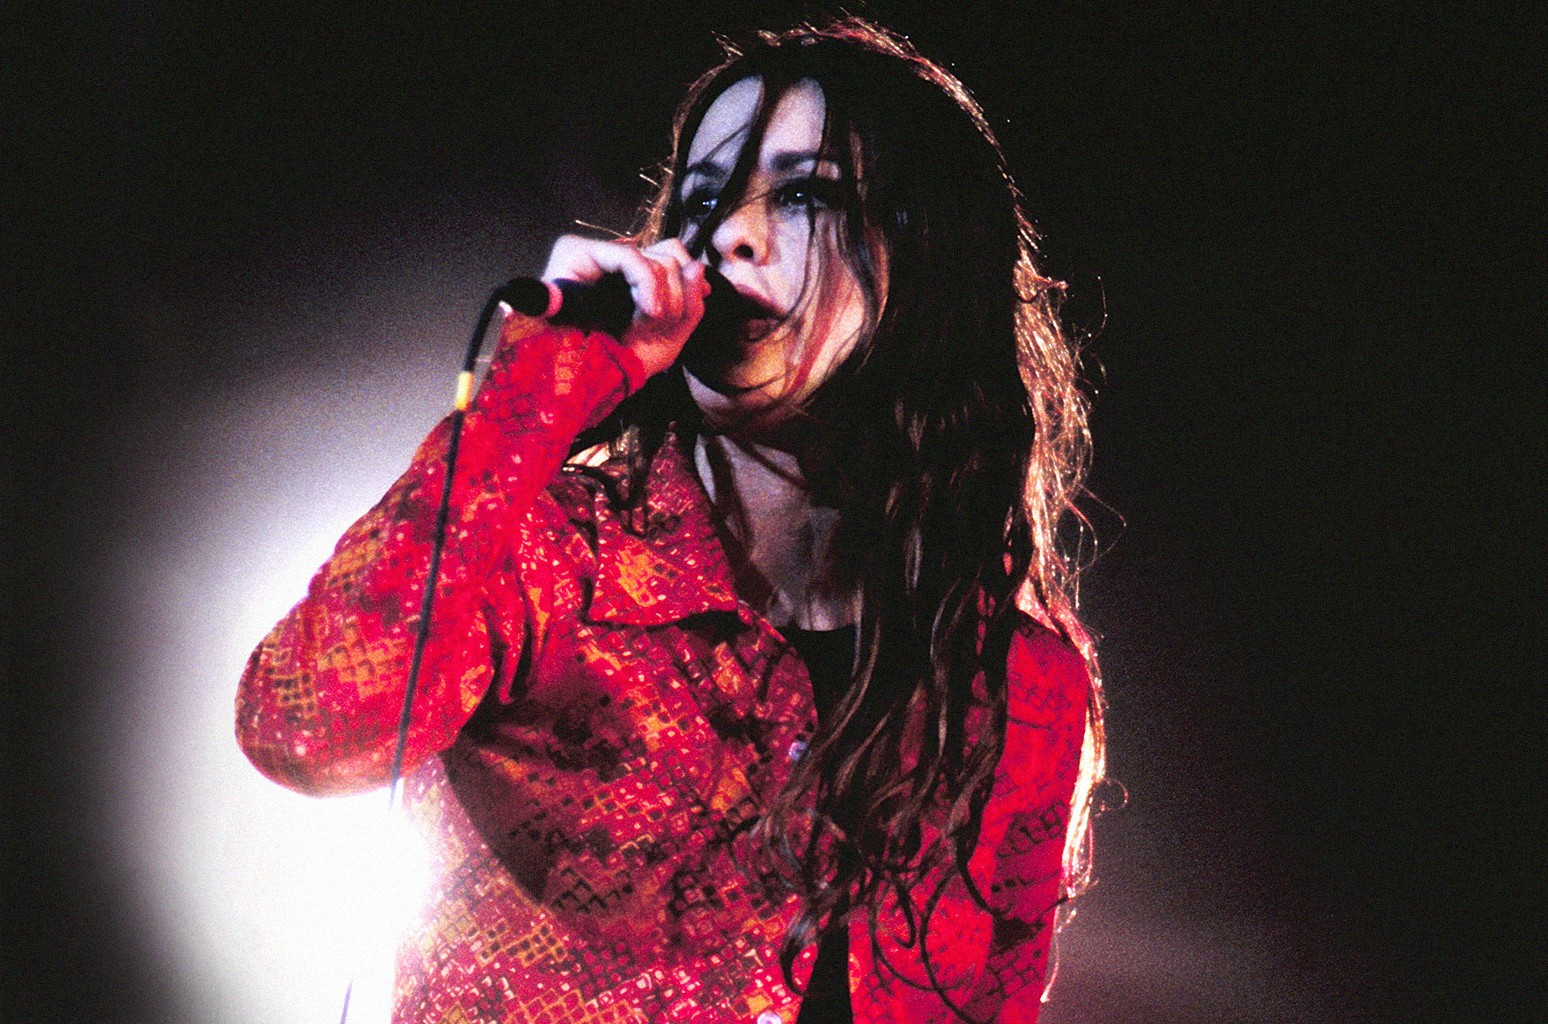 Alanis Morissette performs at the Greek Theater in Berkeley, Calif. on June 7, 1996.